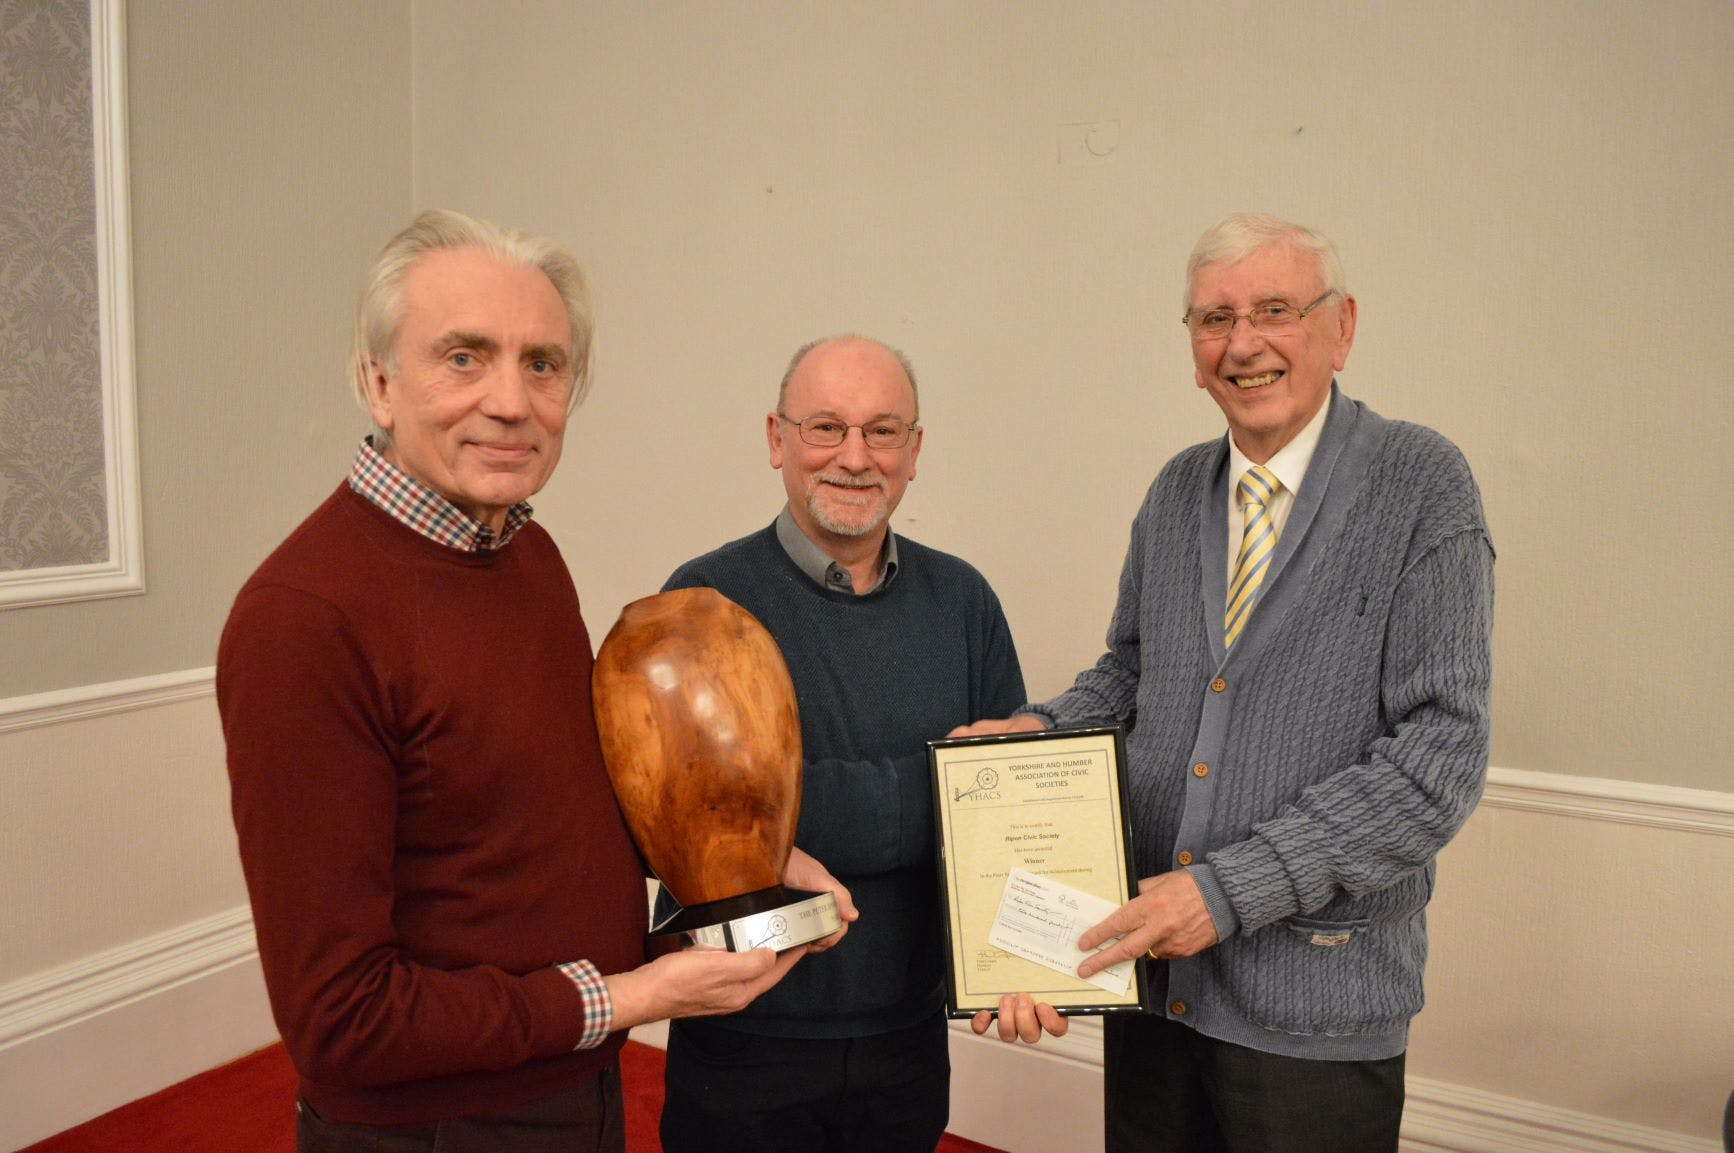 Members of Ripon Civic Society receiving the Peter Spawforth Trophy